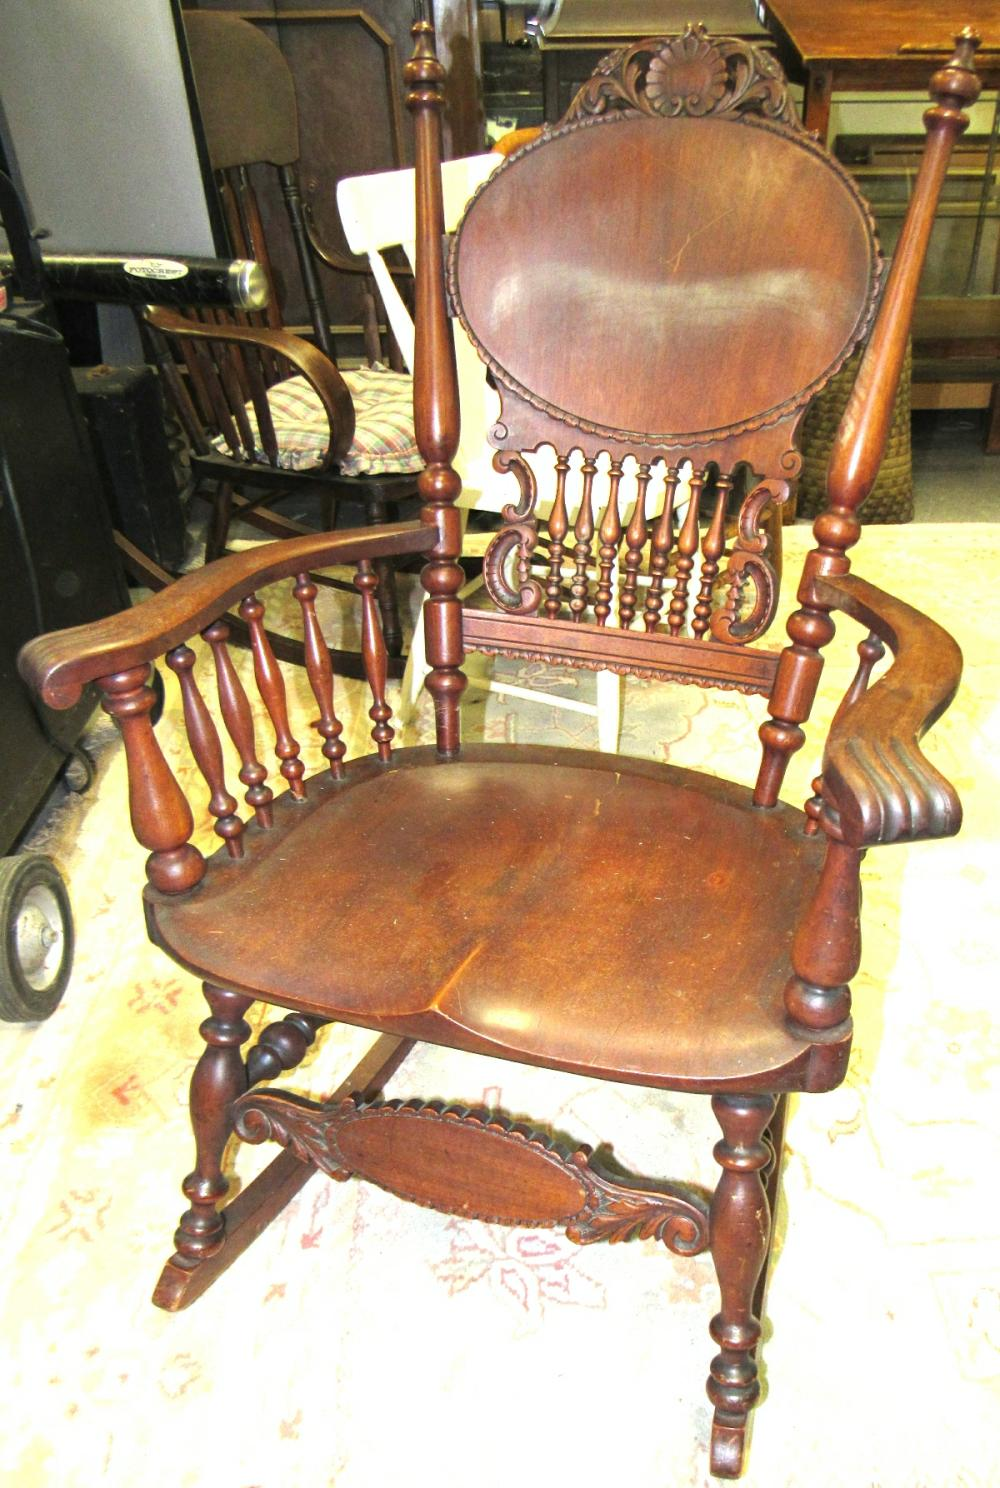 Lot 92: 1800's Fancy Victorian Antique Carved Rocking Chair, All Responsibility for Shipping will be the Successful Bidder. You must arrange for pickup directly or by a shipper within 7 days after sale.